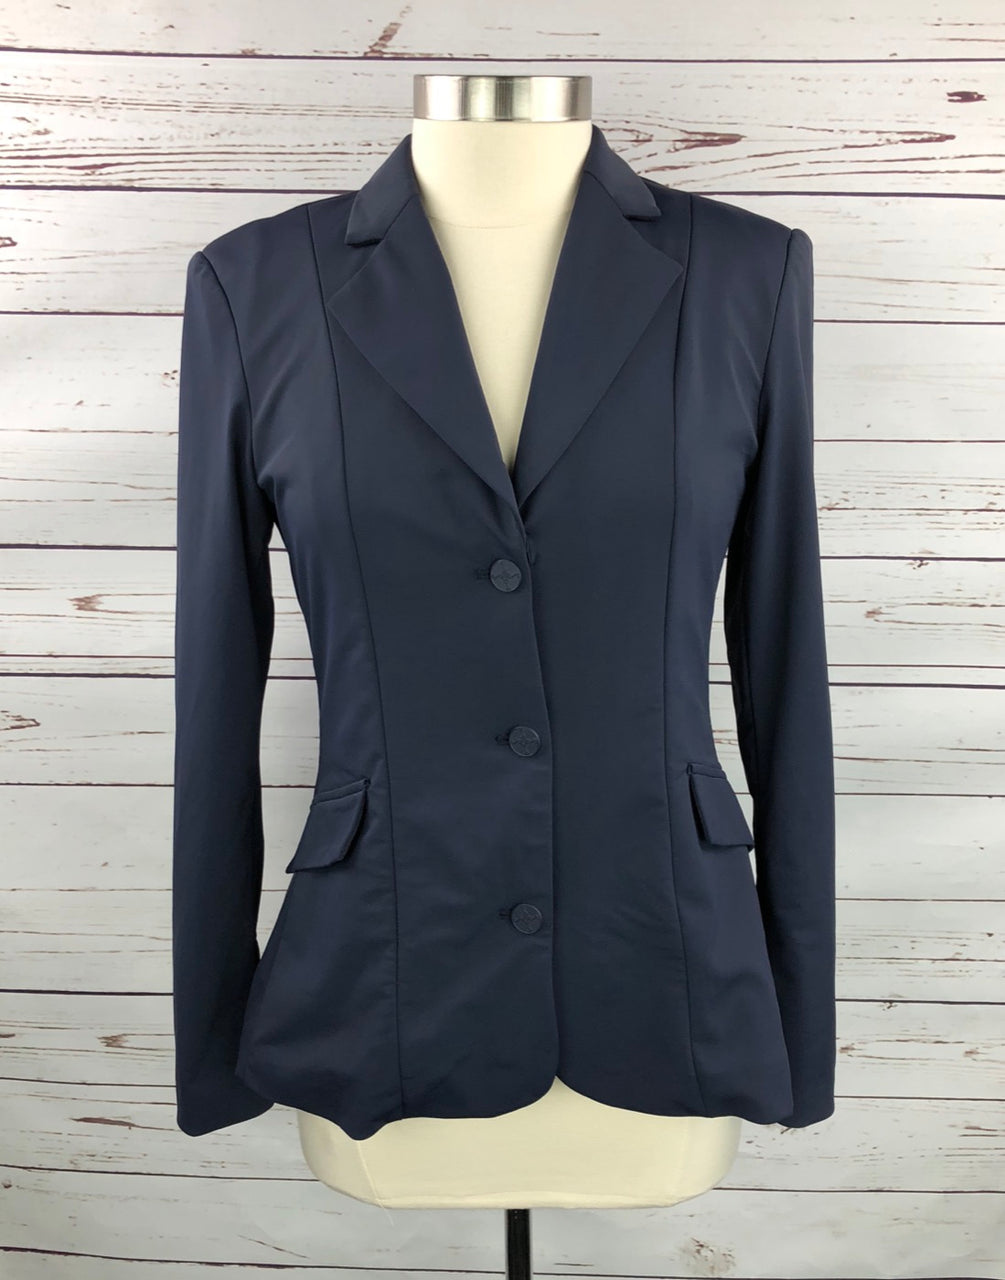 Tredstep Solo Classic Competition Coat in Navy - Women's US 4